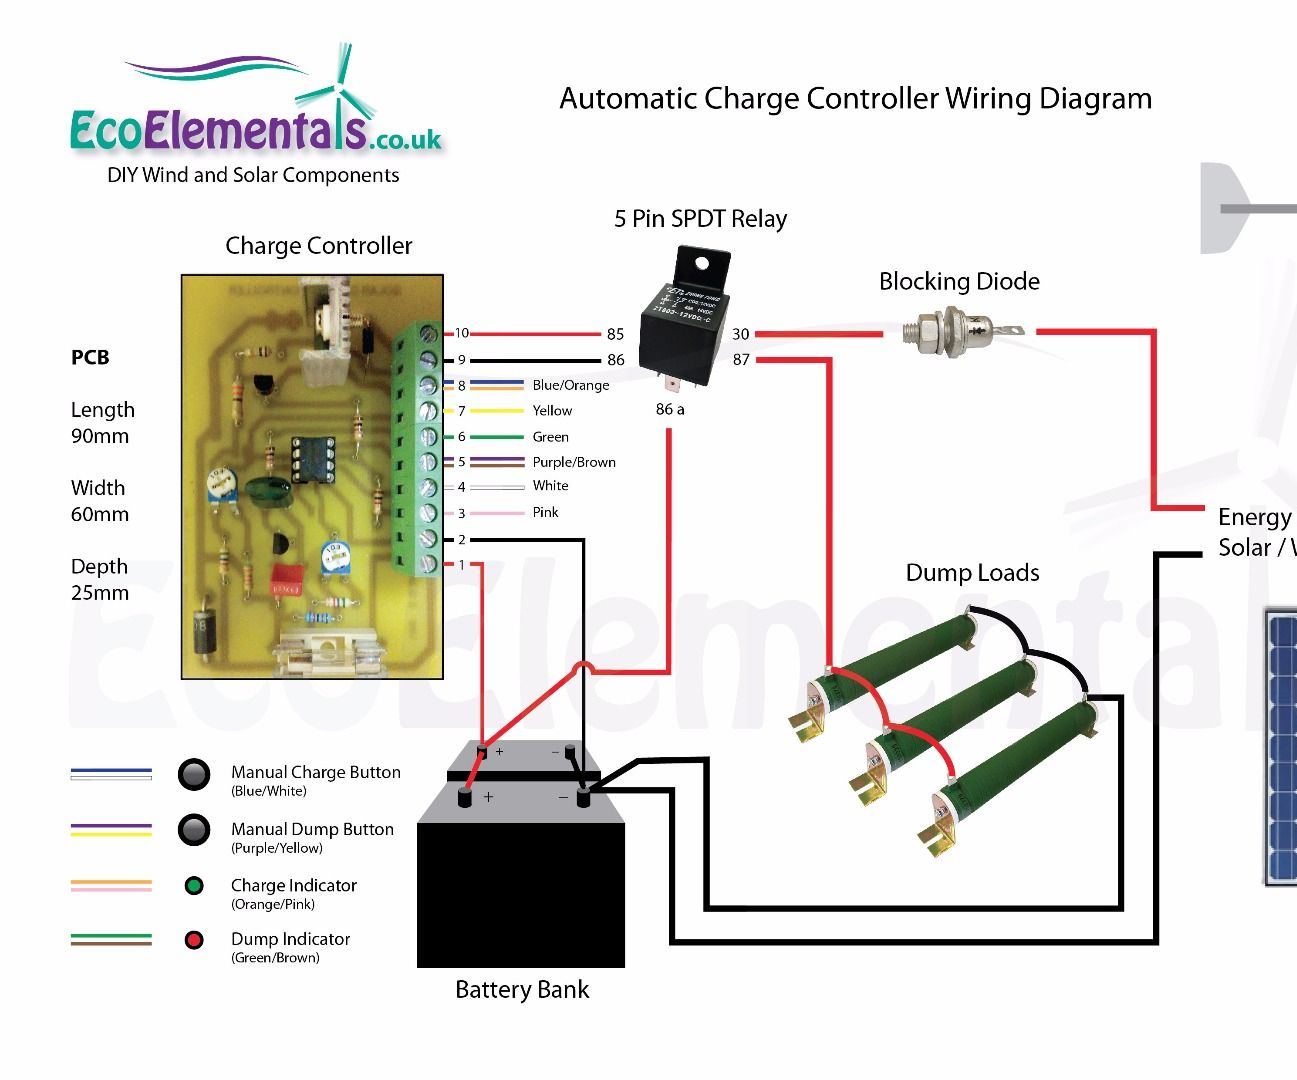 small resolution of charge controller wiring diagram for diy wind turbine or solar panels wind turbine wiring diagram wind turbine wiring diagram